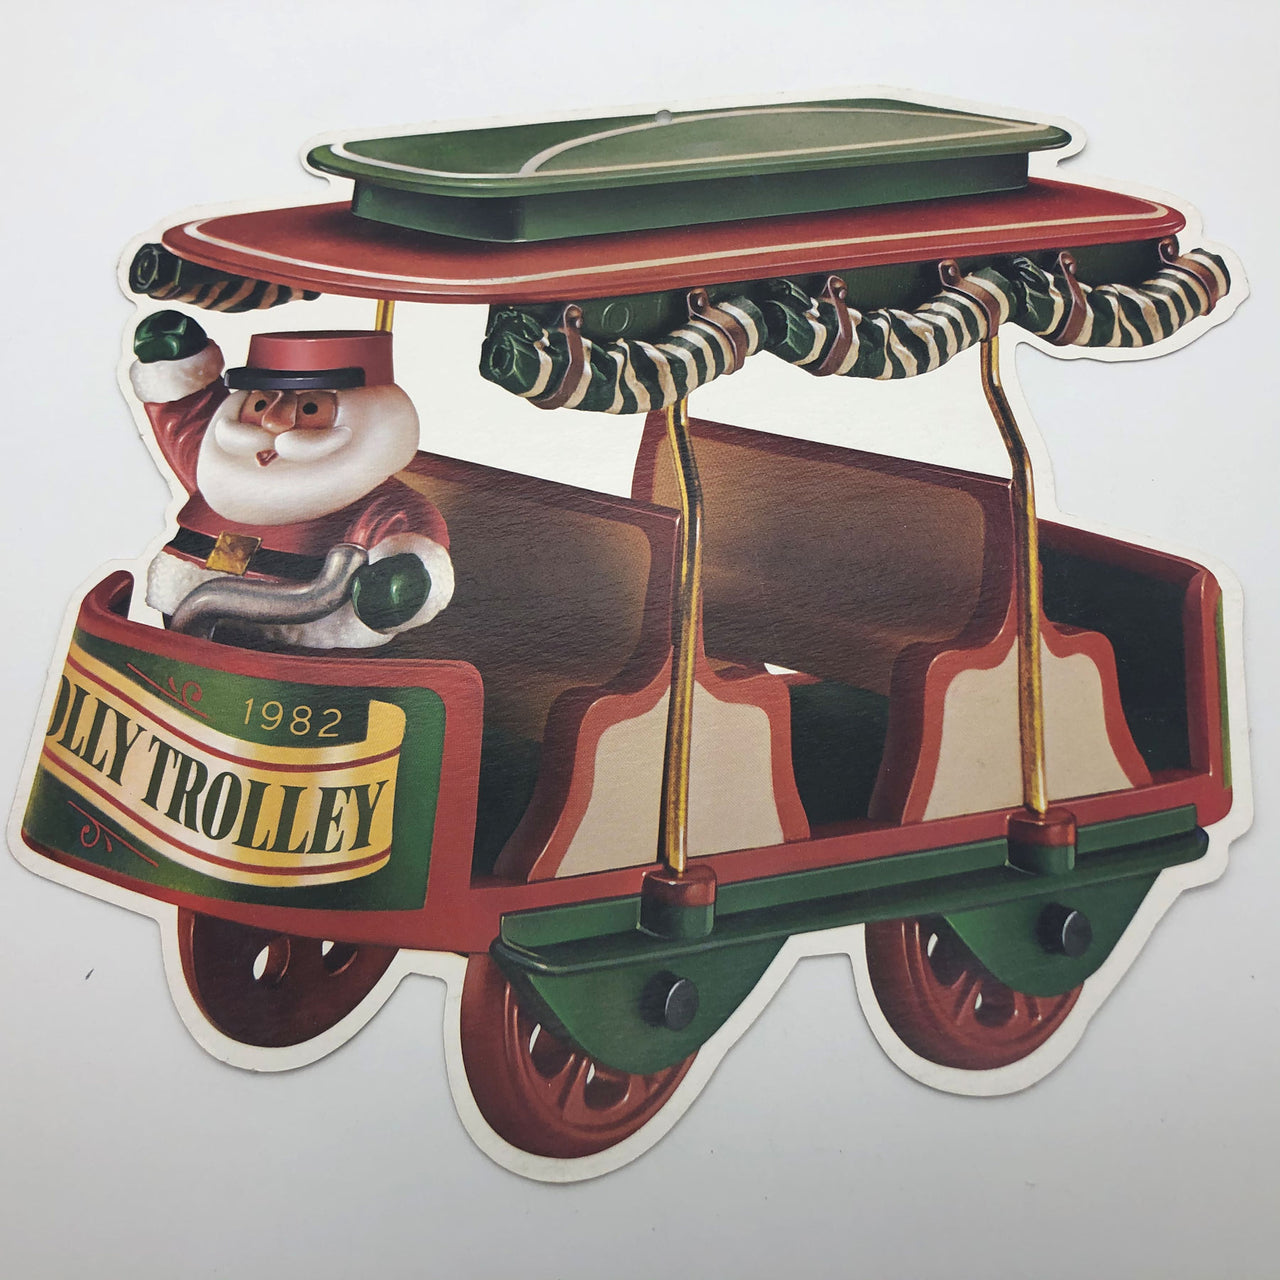 1982 Jolly Trolley Hallmark Santa 10 Cardboard Hanging Decorations 10-1/2""